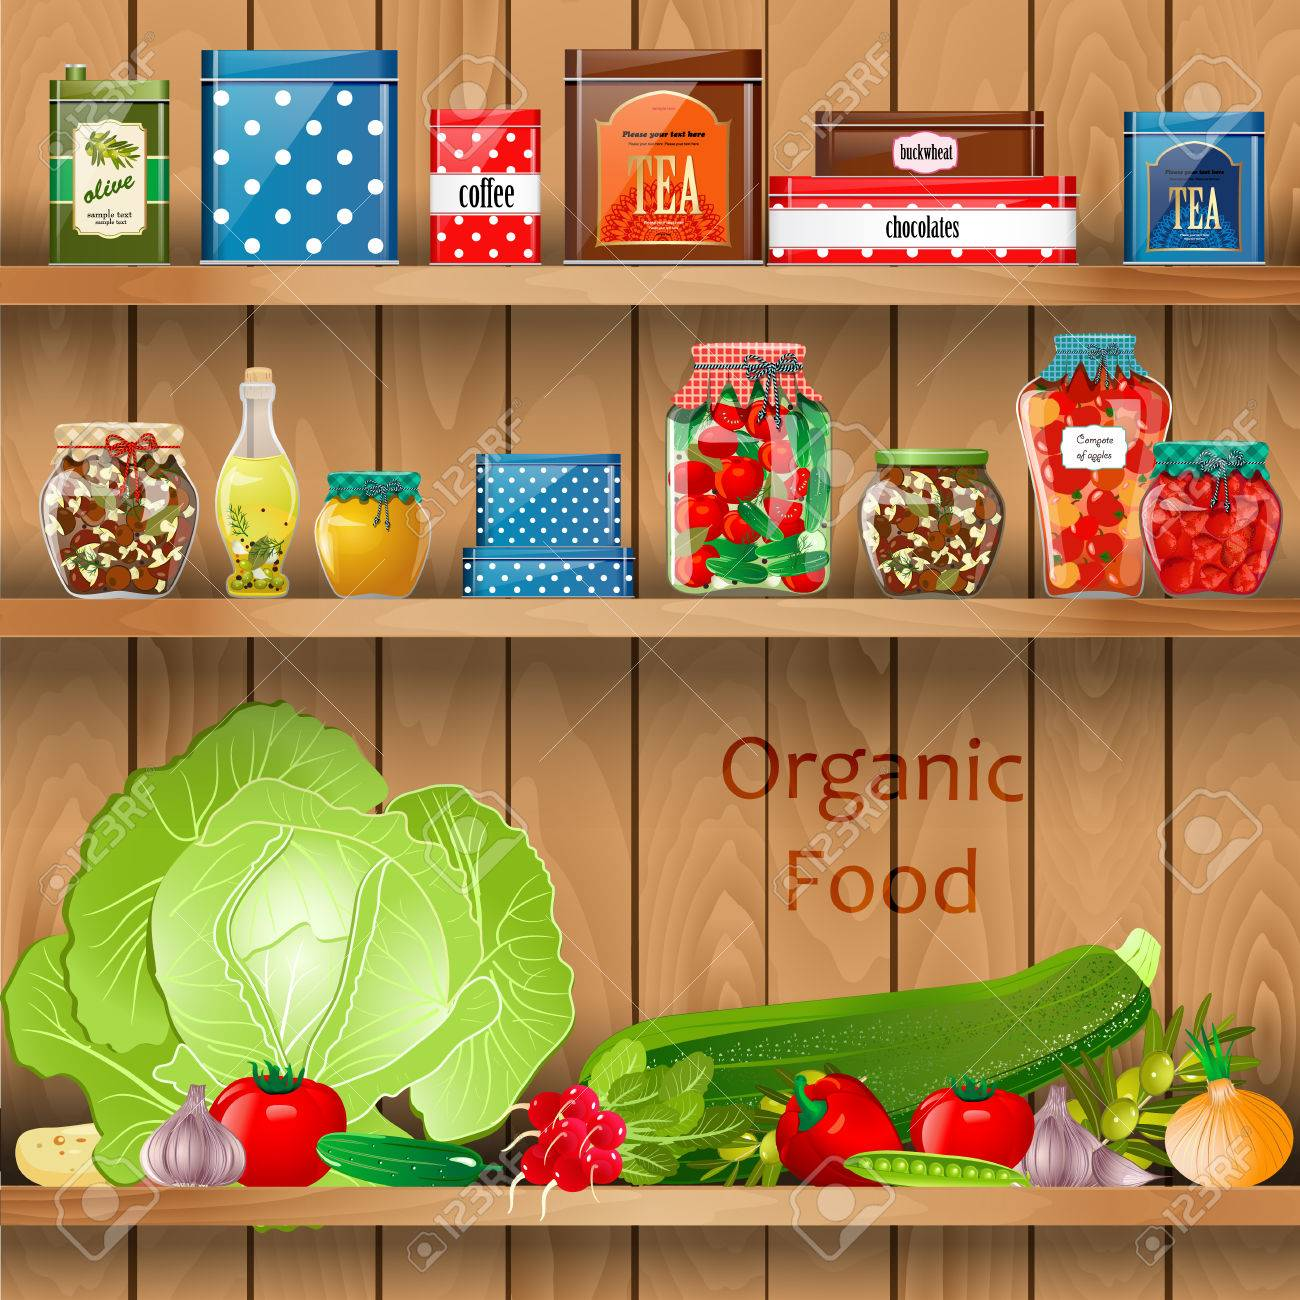 Delicious and healthy food on wooden shelves realistic - 24640936